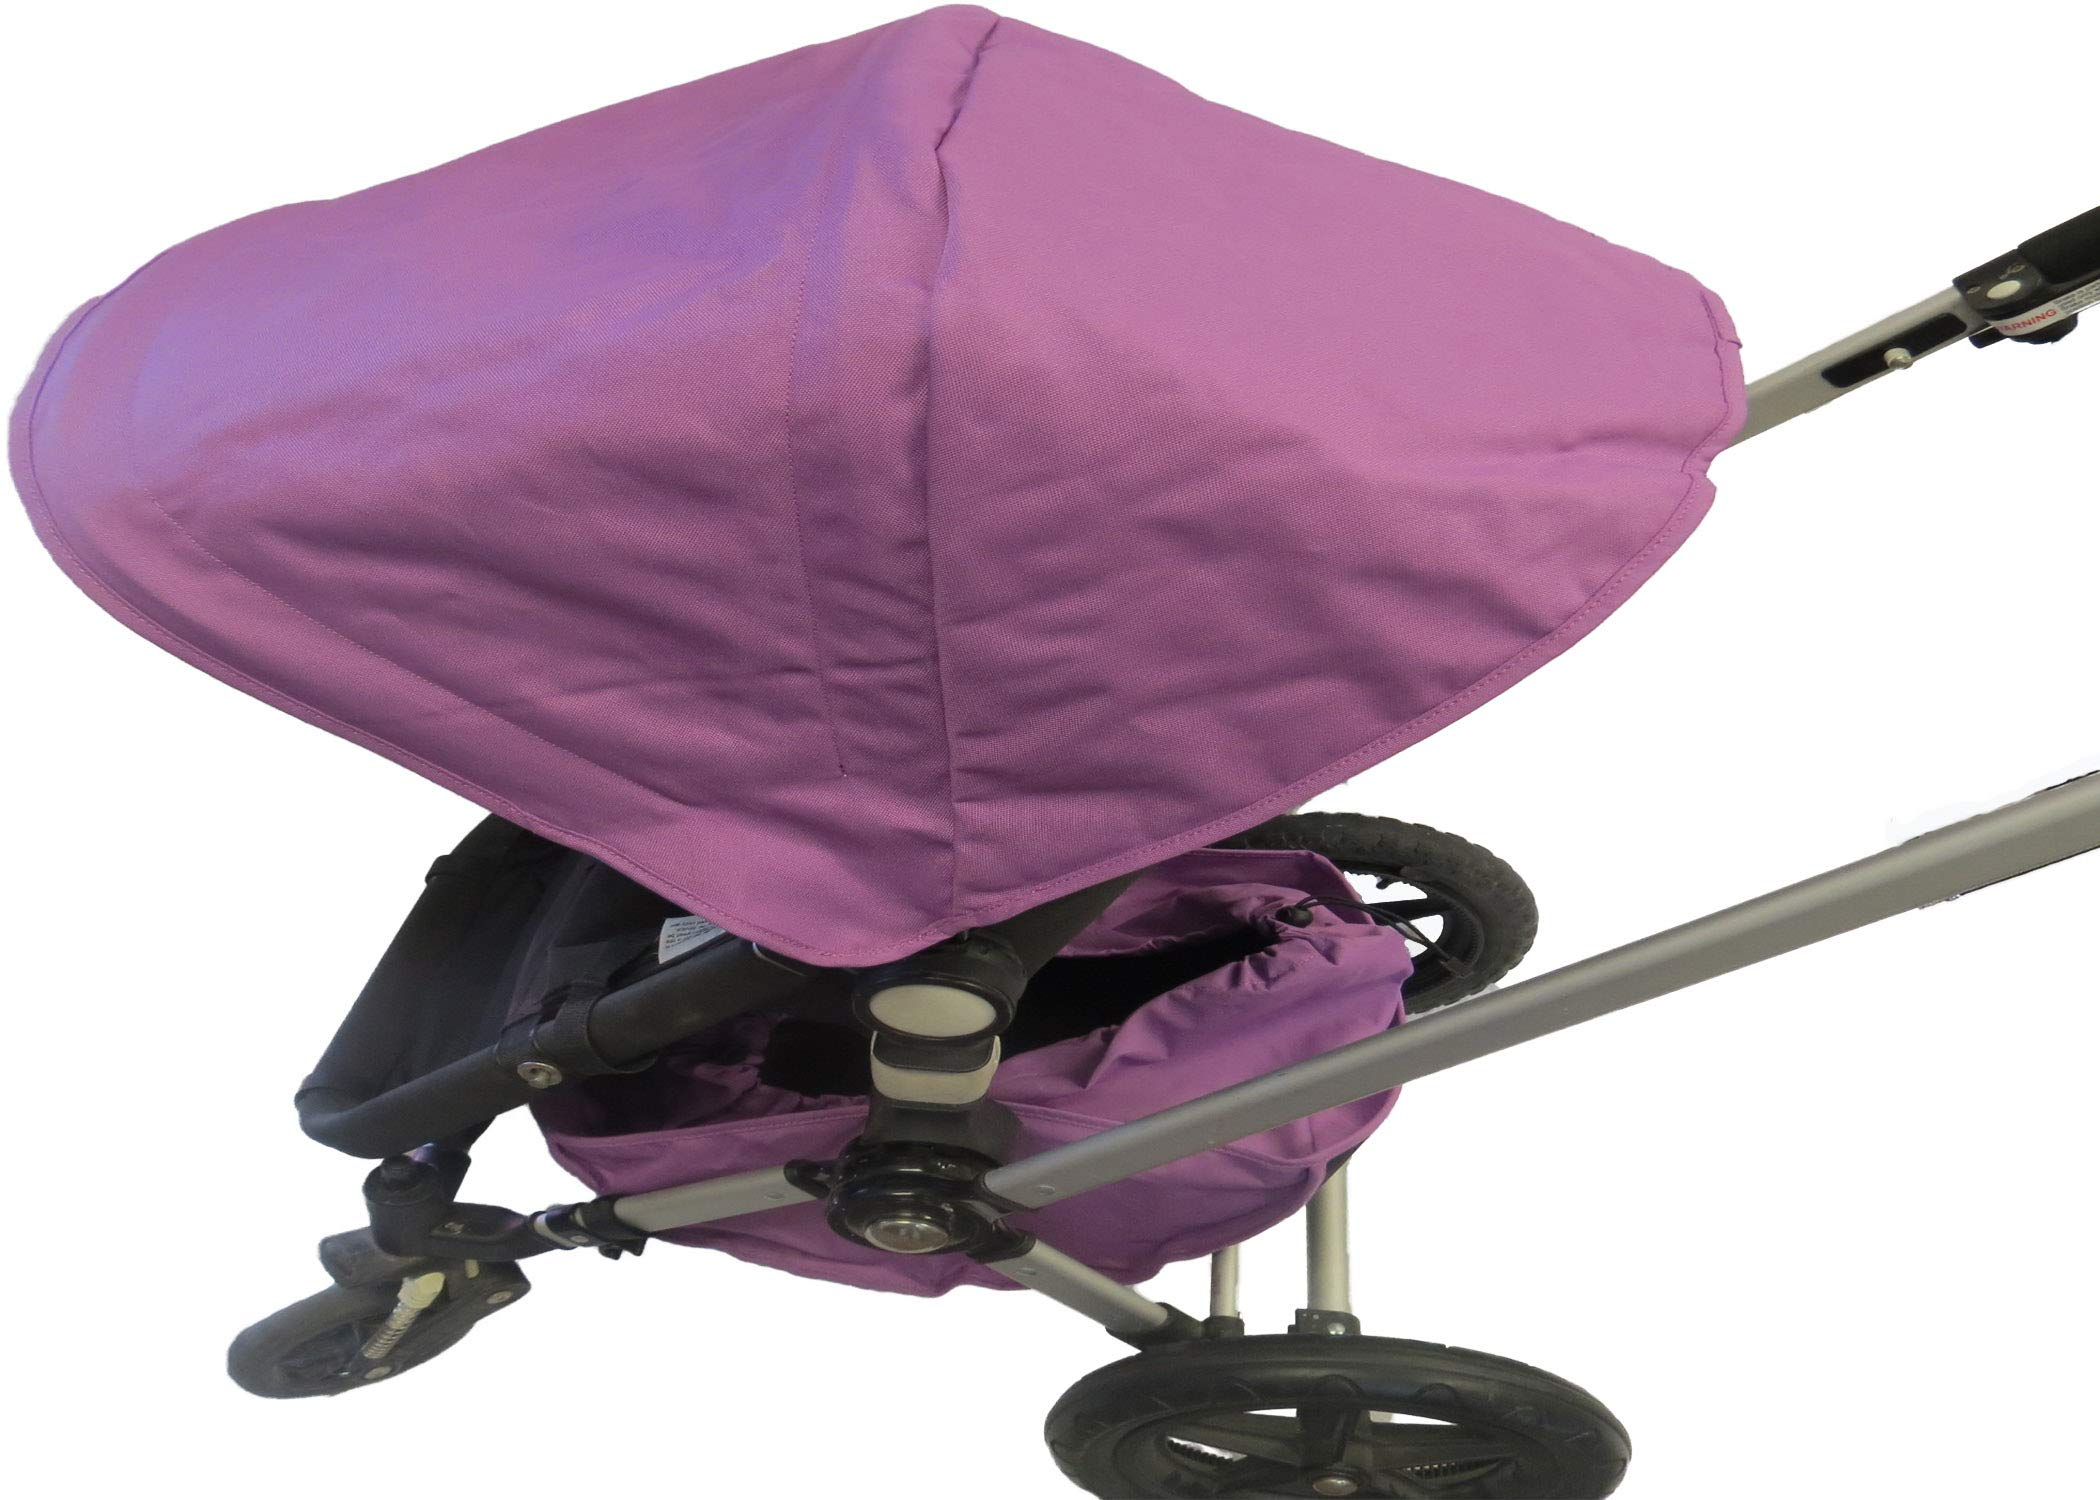 Purple Sun Shade Canopy and Large Under Seat Storage Basket Plus Free Handle Bar Covers for Bugaboo Cameleon 1, 2, 3, Frog Baby Child Strollers